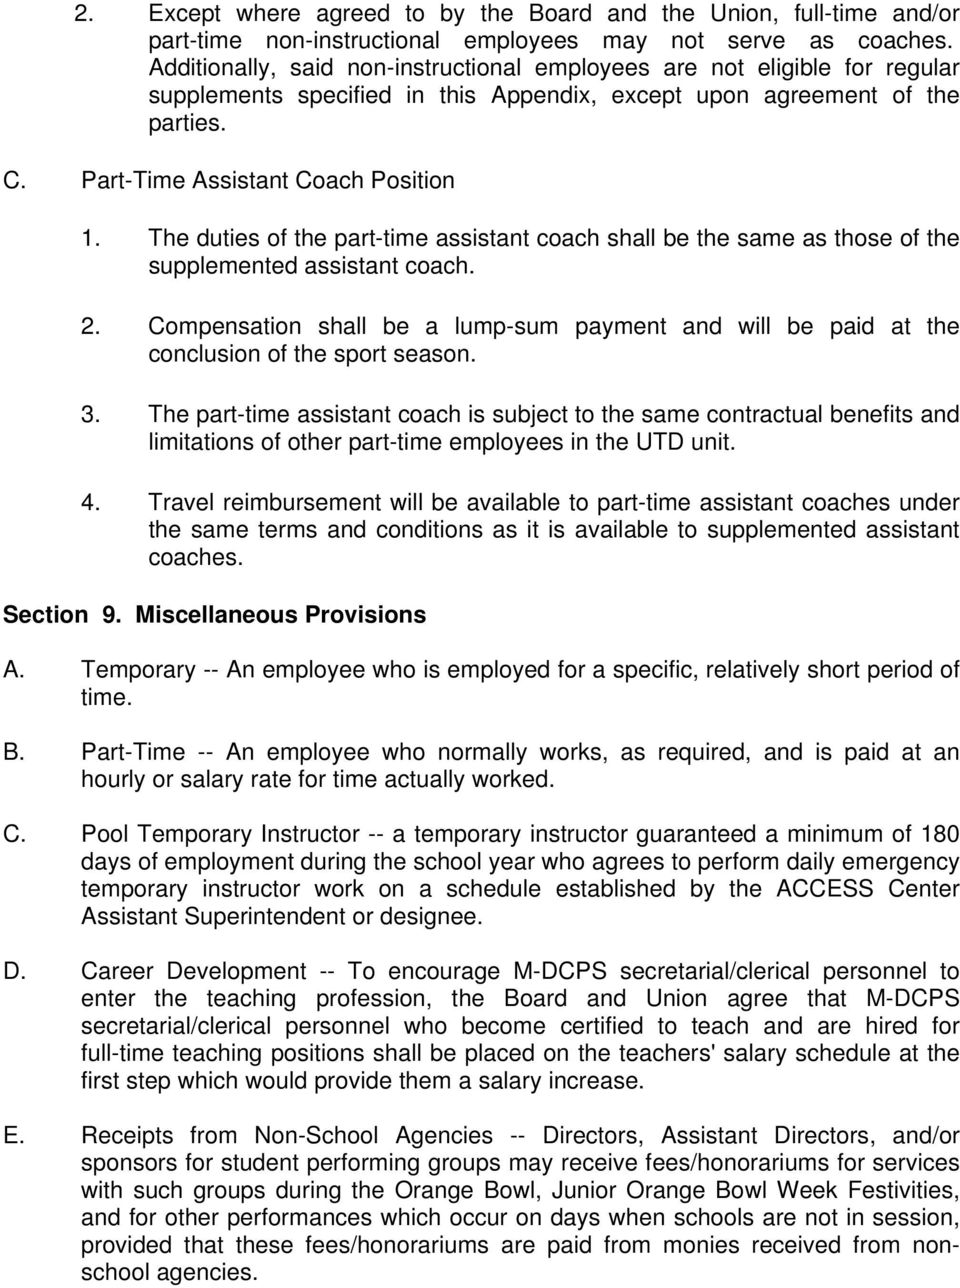 The duties of the part-time assistant coach shall be the same as those of the supplemented assistant coach. 2.